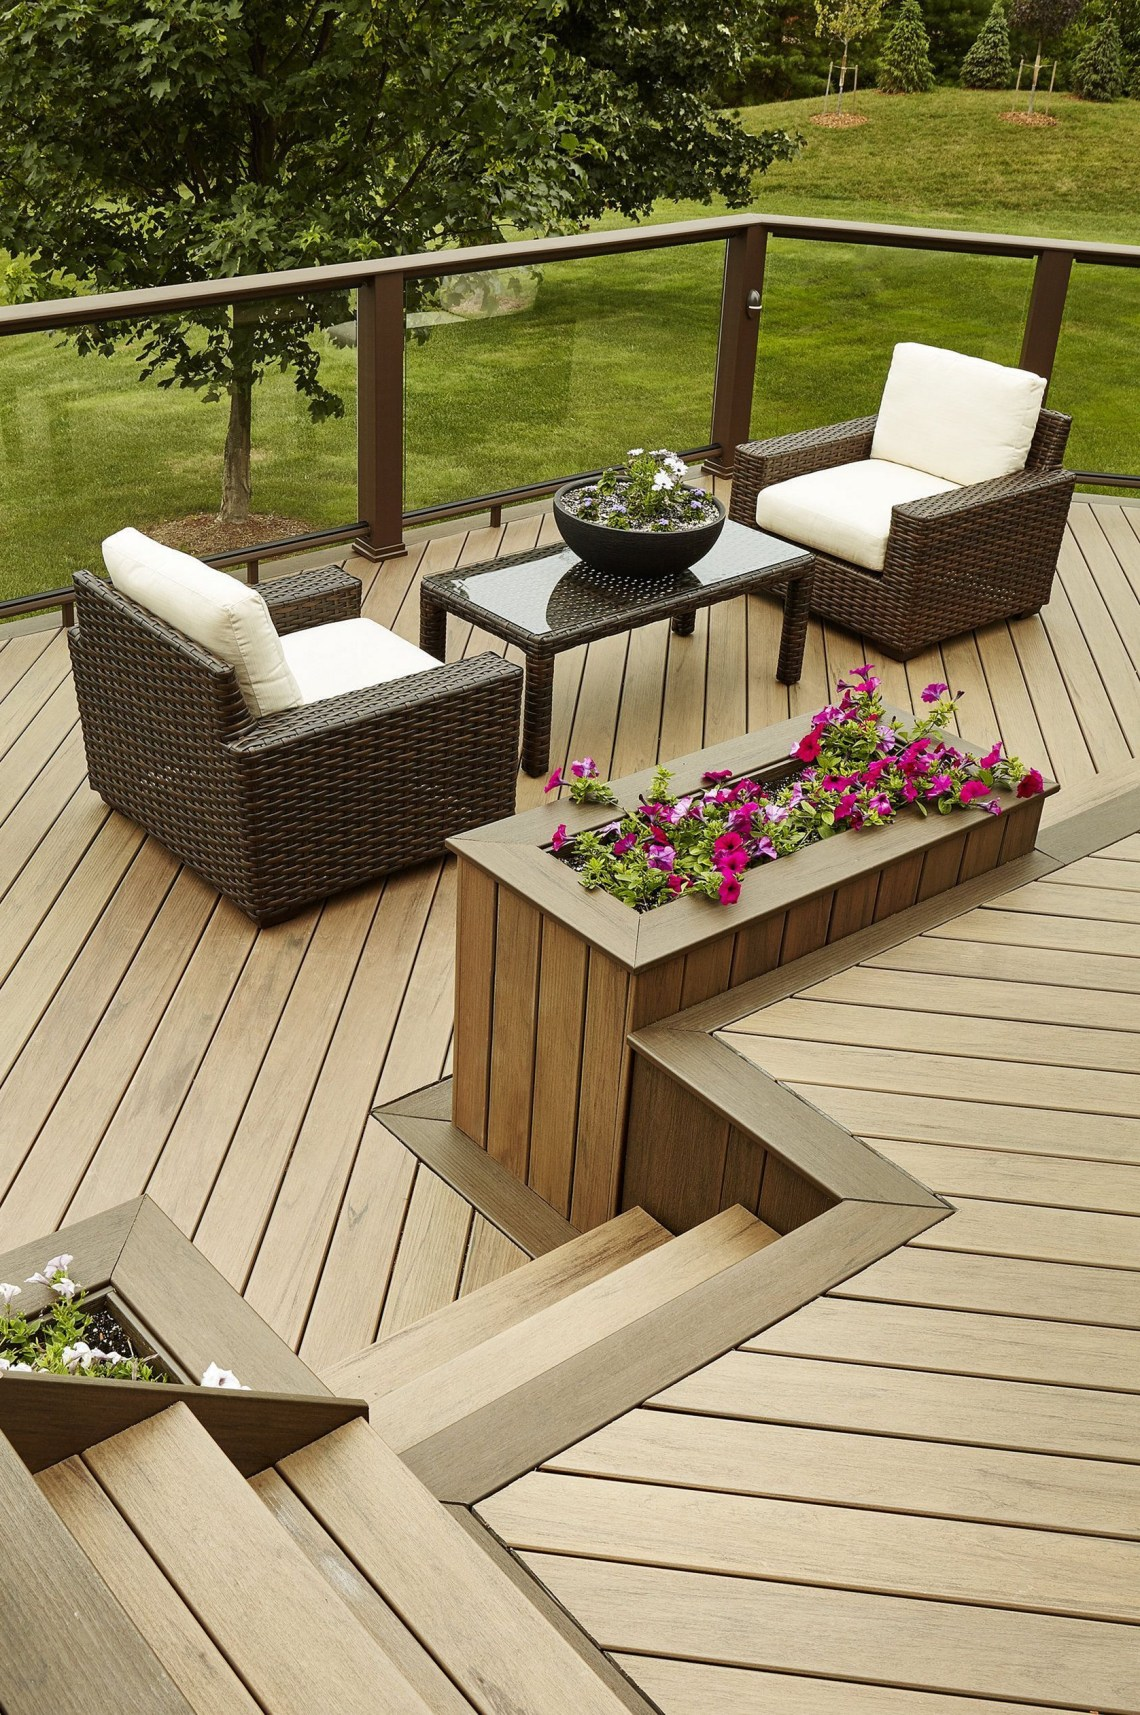 Unbelievable Outdoor Deck Ideas For Cozy Relaxing Place